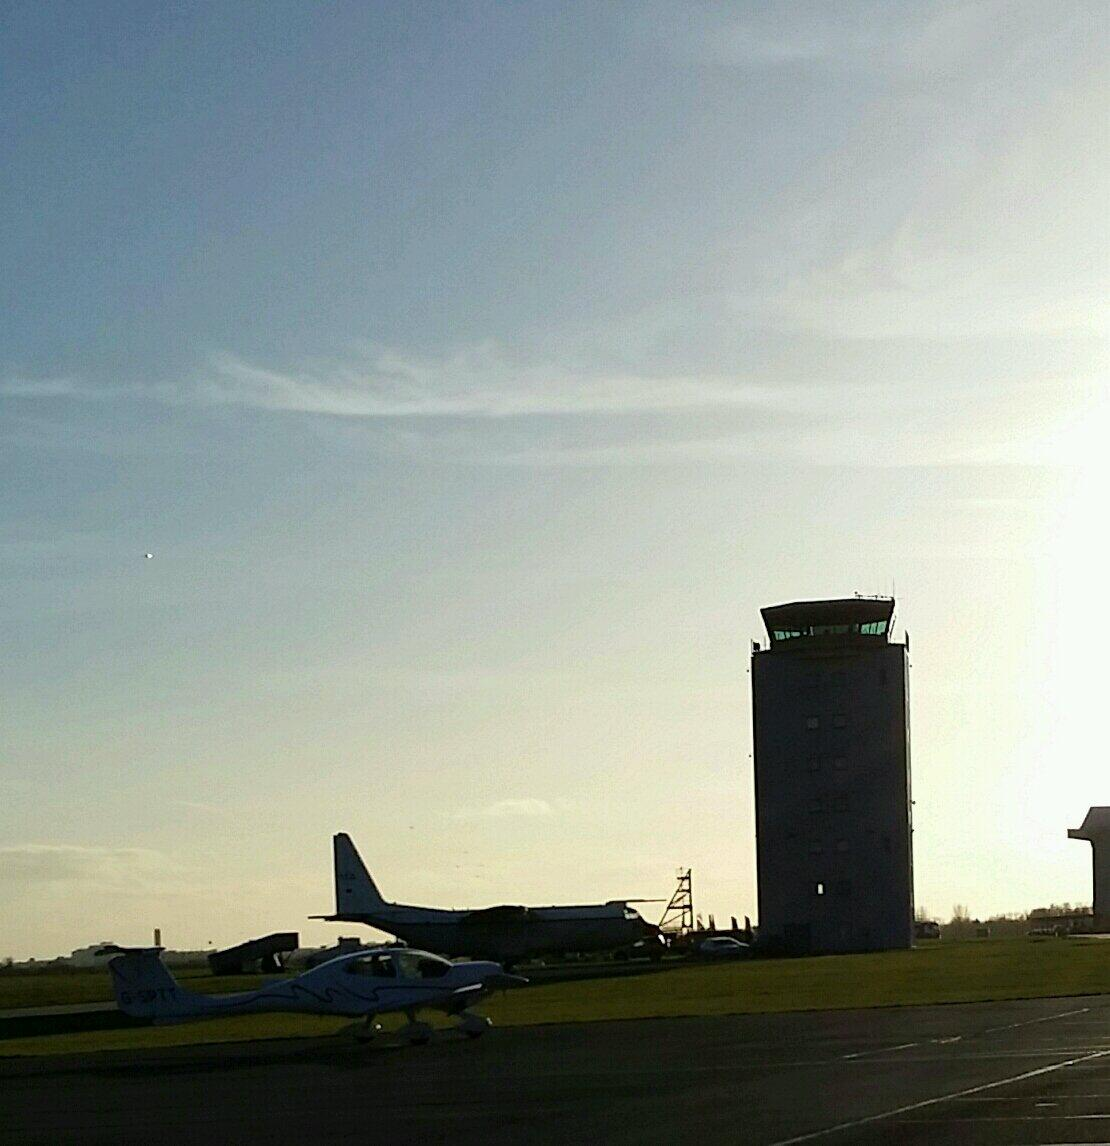 Cambridge air traffic control tower is a bit tall isn't it? Wonder if they have a lift? X #myplaneisthelittleone x http://t.co/k7pjRRCbpY